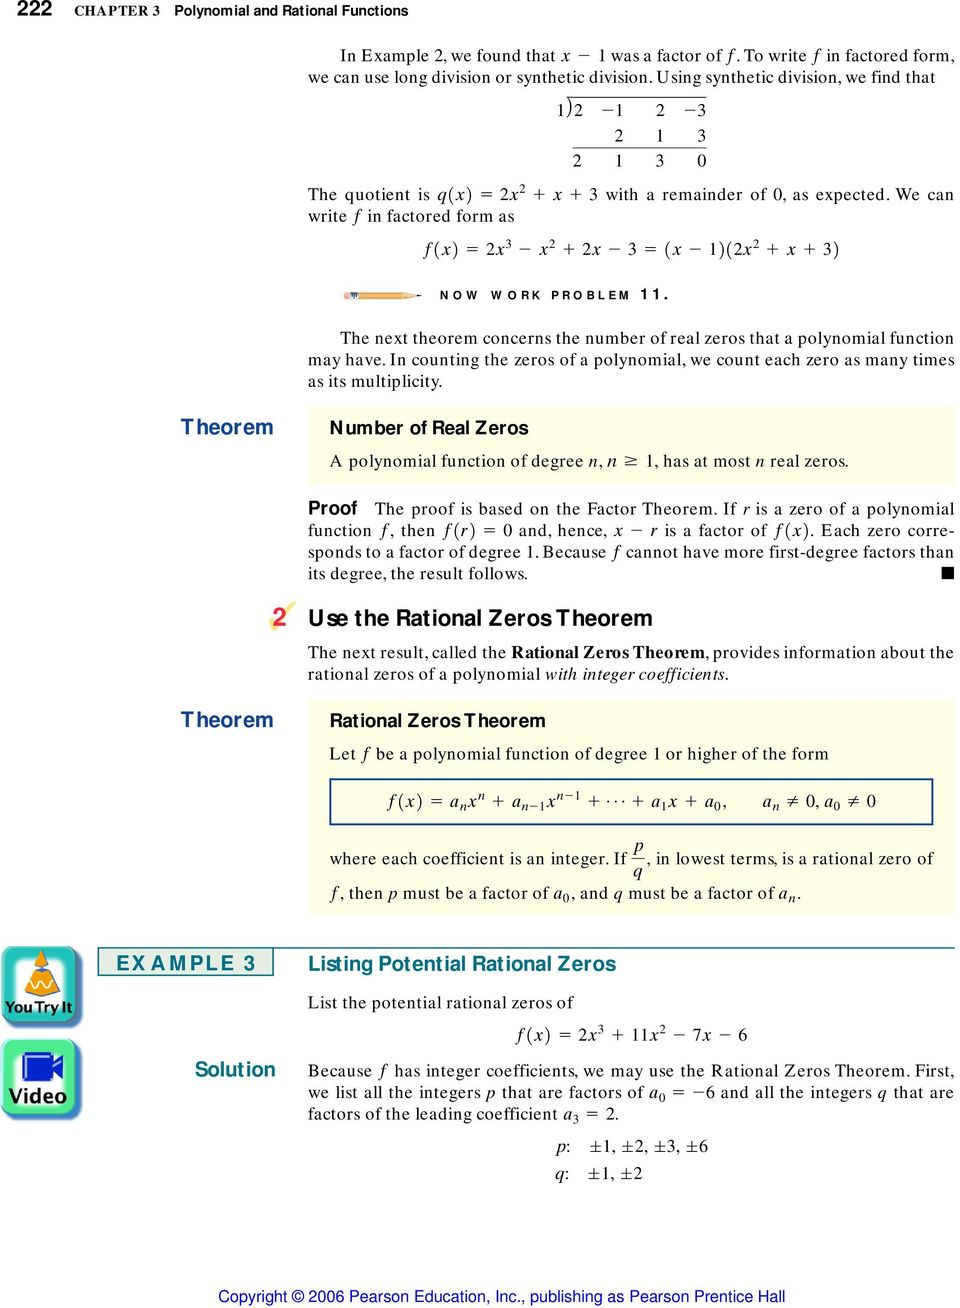 3 6 The Real Zeros of a Polynomial Function - PDF